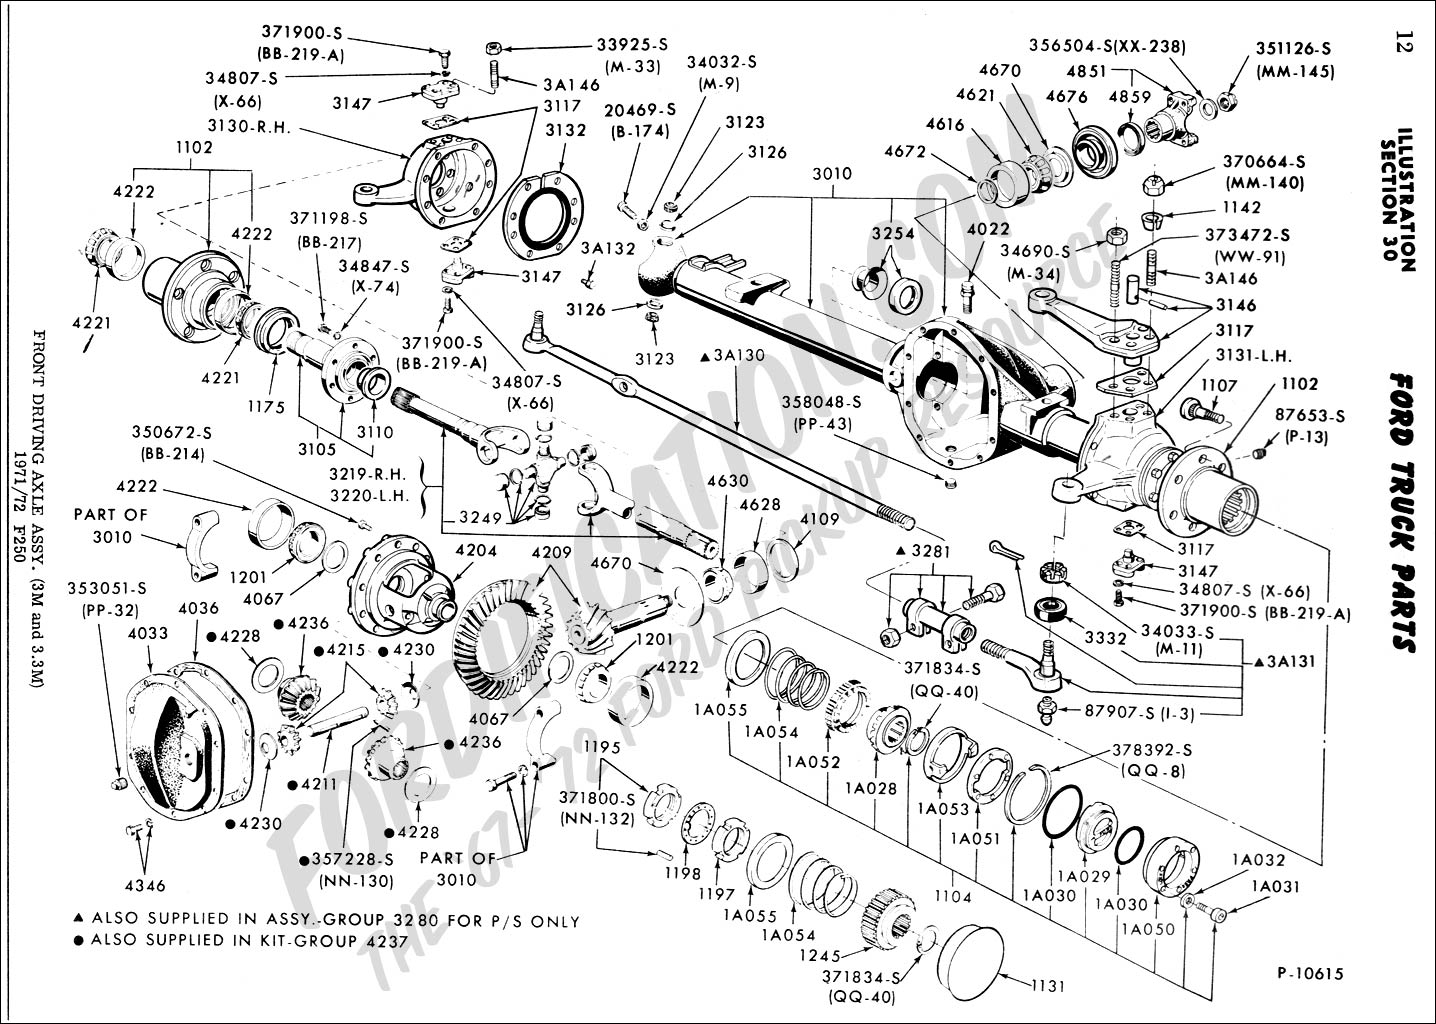 2002 Ford F 250 Parts Diagram - Wiring Diagram Direct step-pipe -  step-pipe.siciliabeb.itstep-pipe.siciliabeb.it